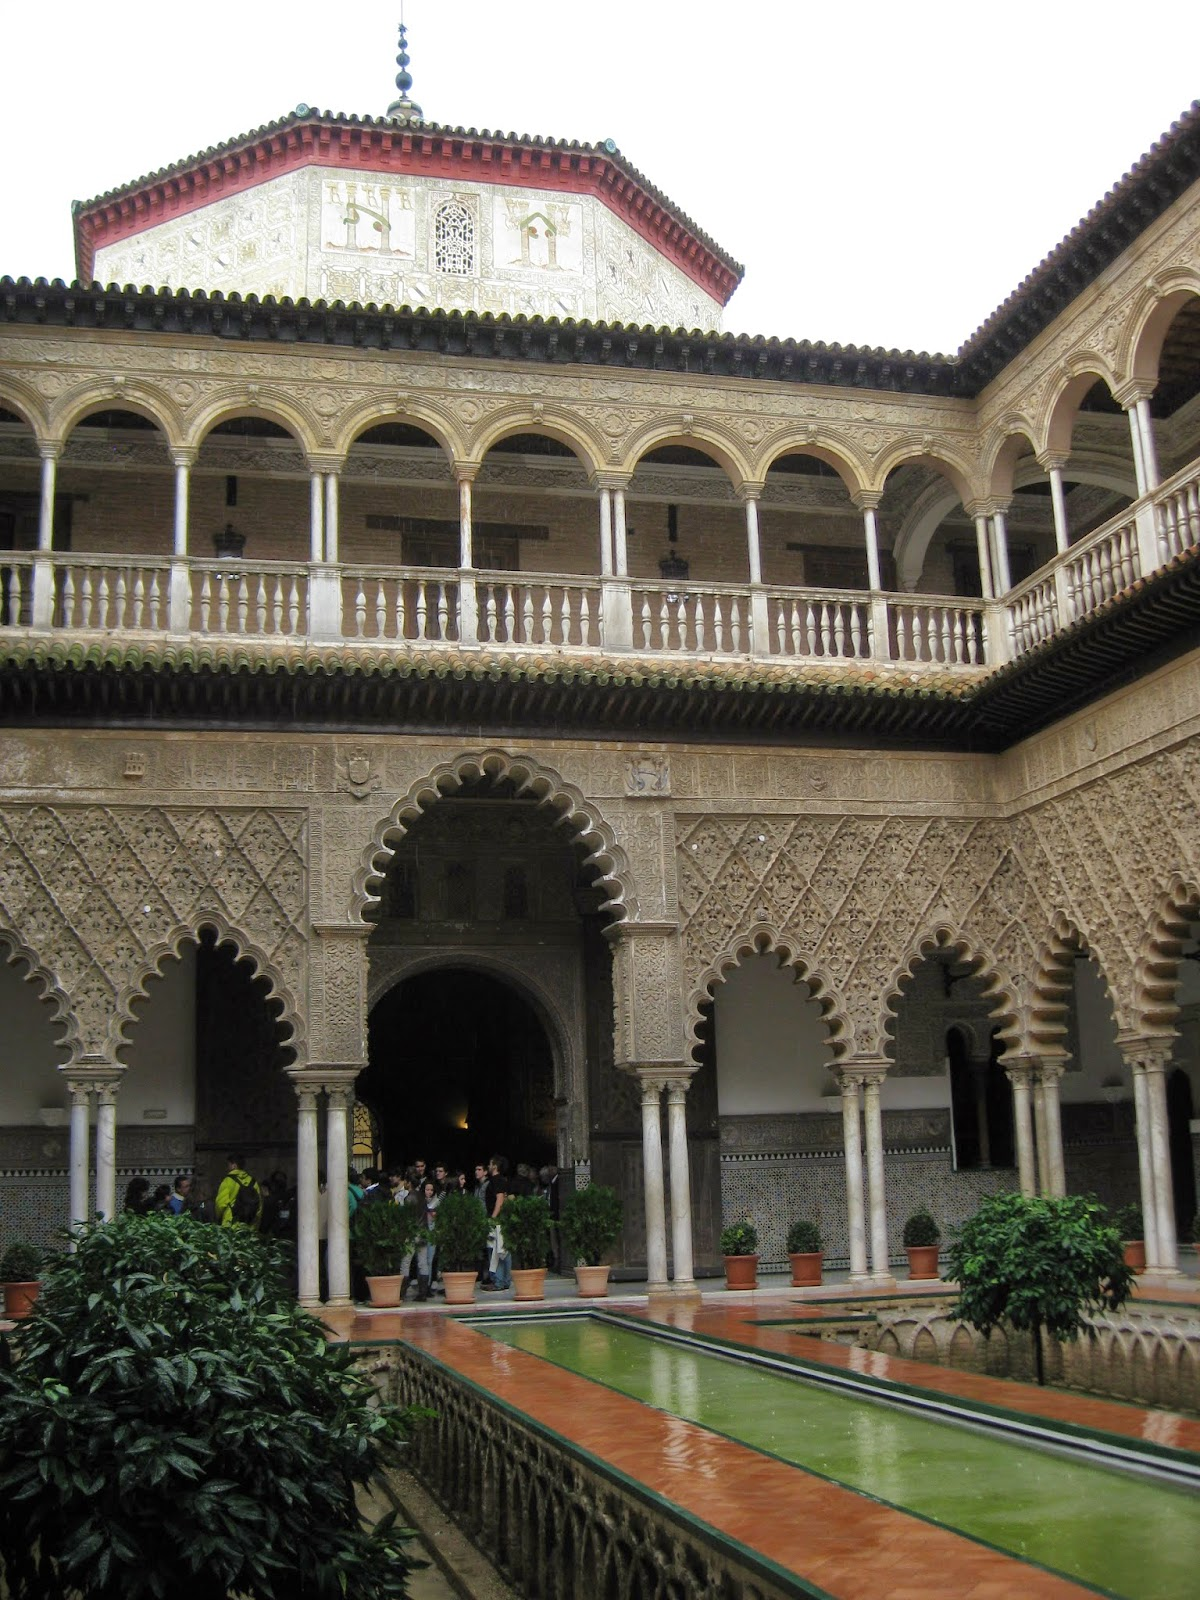 Seville - The Alcazar